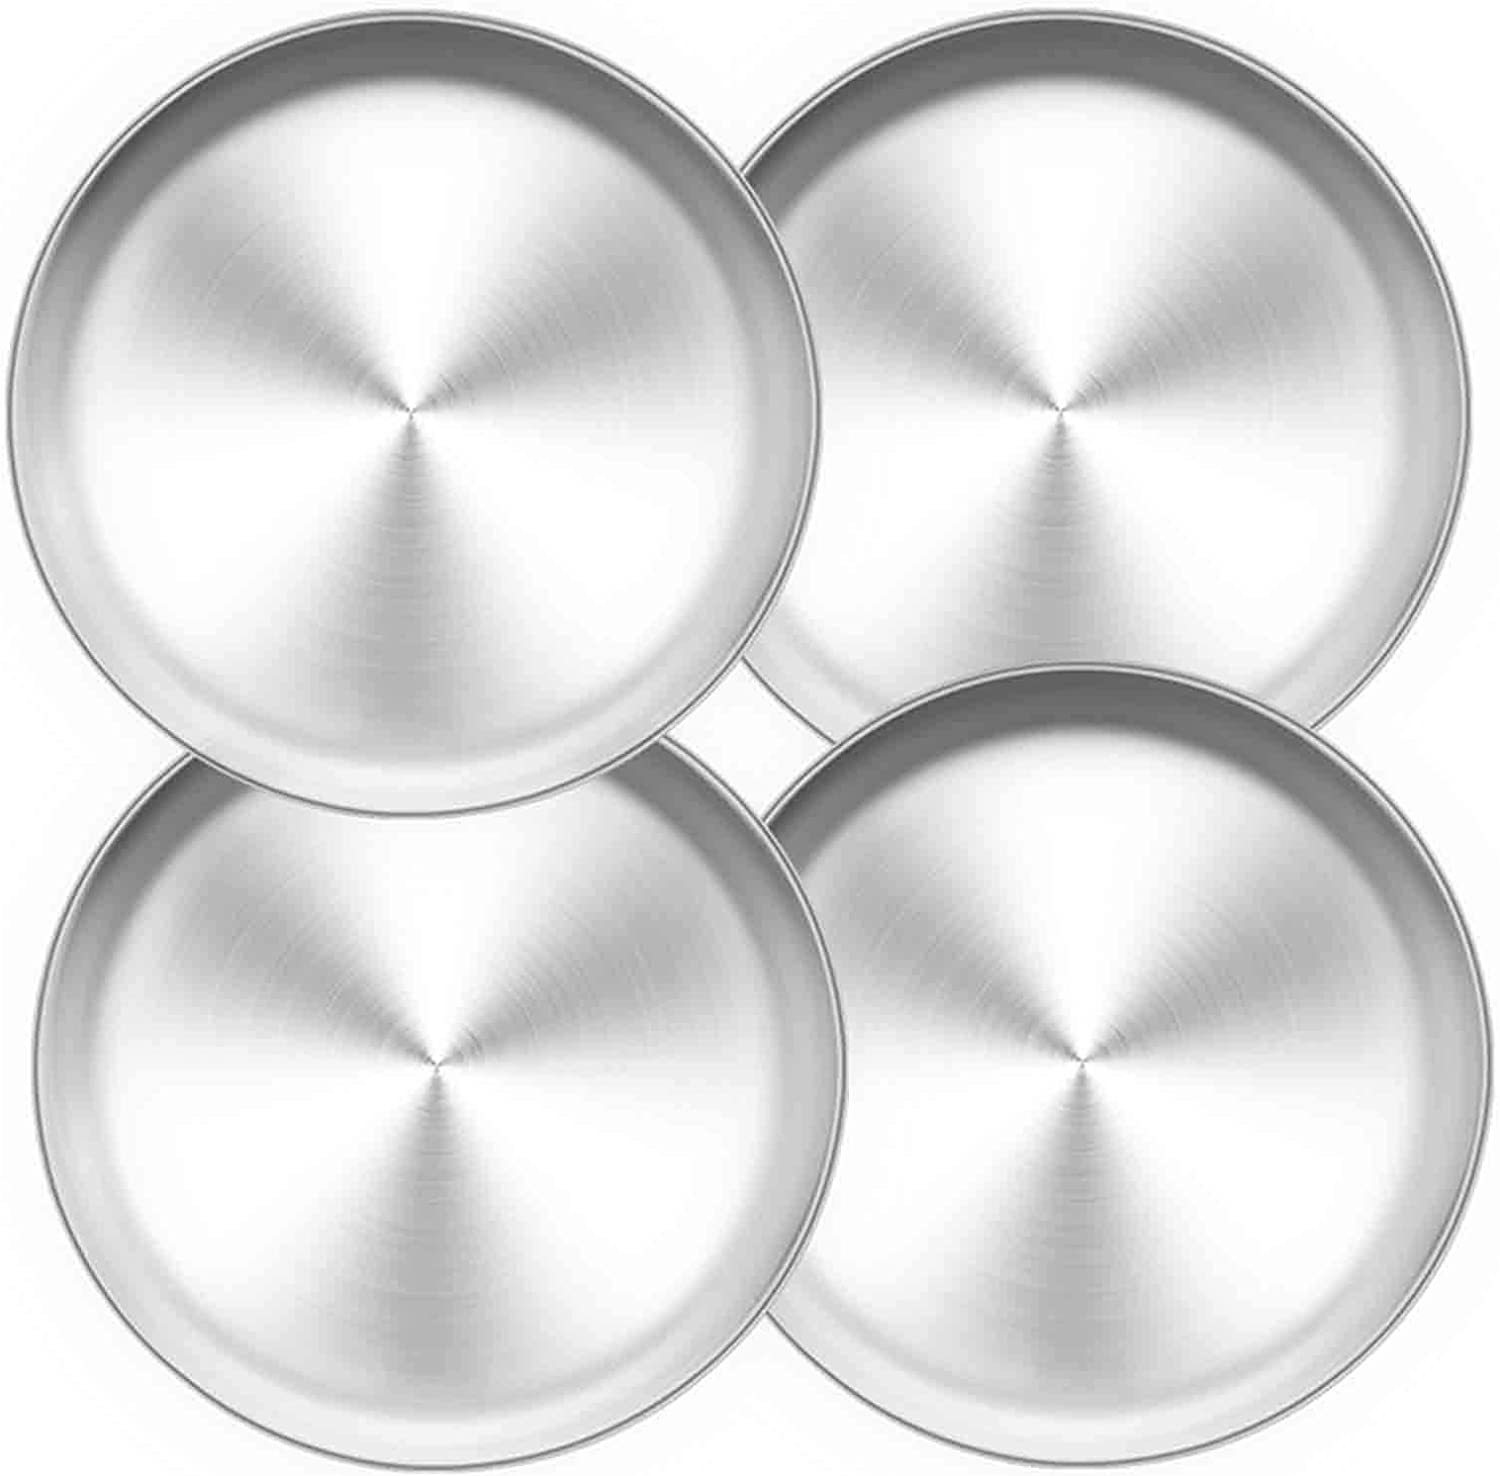 TeamFar Pizza Pan Healthy /& Heavy Duty 2 Piece 13.4 inch Stainless Steel Pizza Pan Set Large Pizza Oven Pans Tray for Baking Serving Oven /& Dishwasher Safe